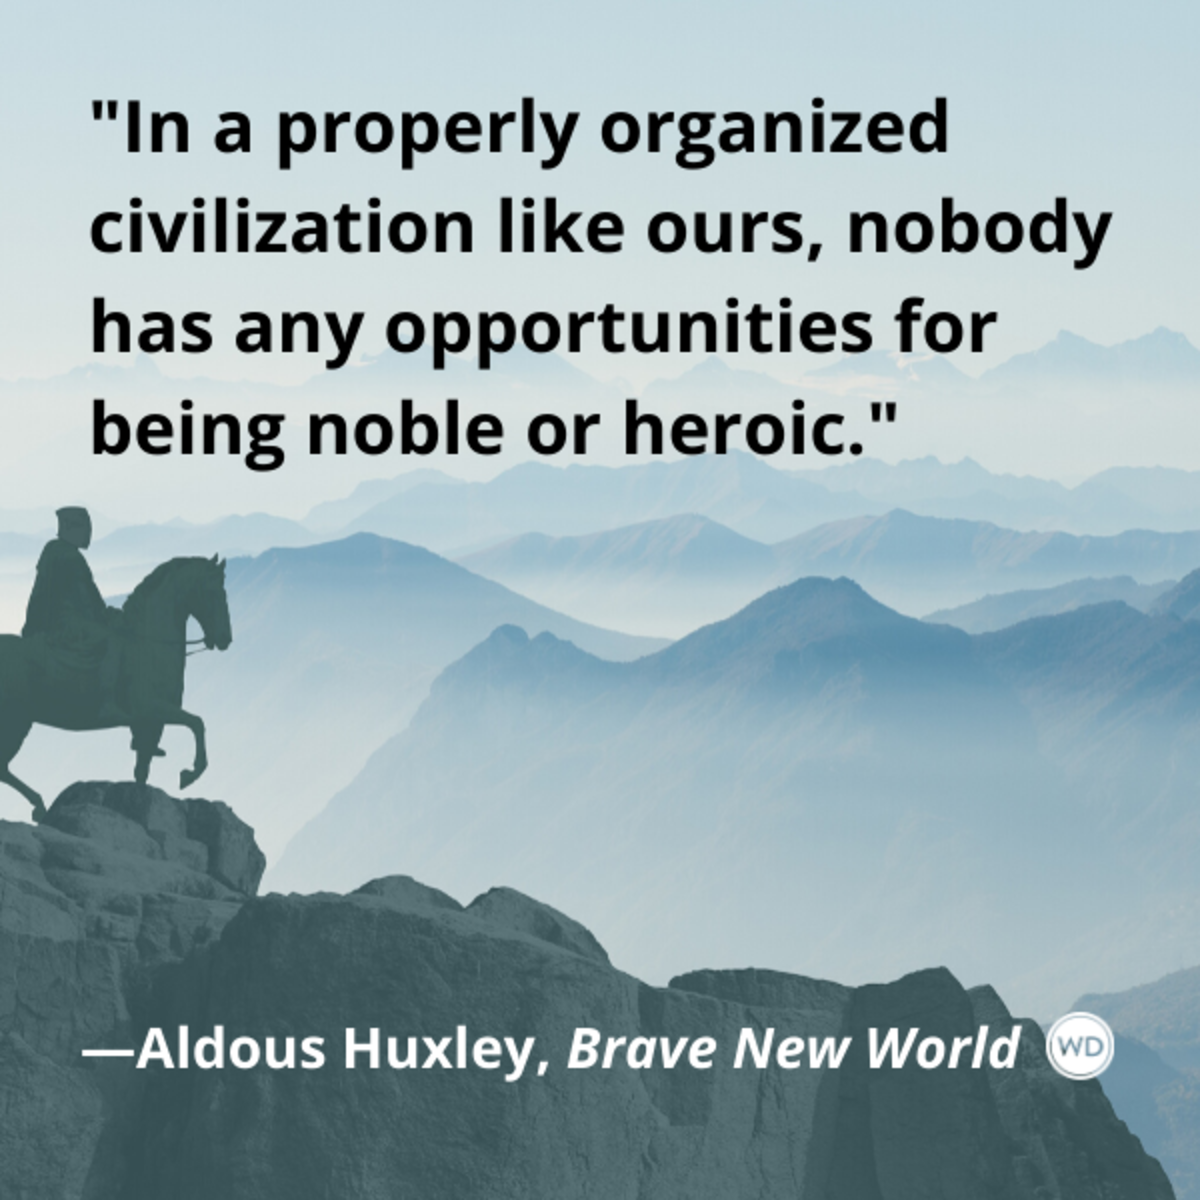 aldous_huxley_brave_new_world_quotes_in_a_properly_organized_civilization_like_ours_nobody_has_any_opportunities_for_being_noble_or_heroic